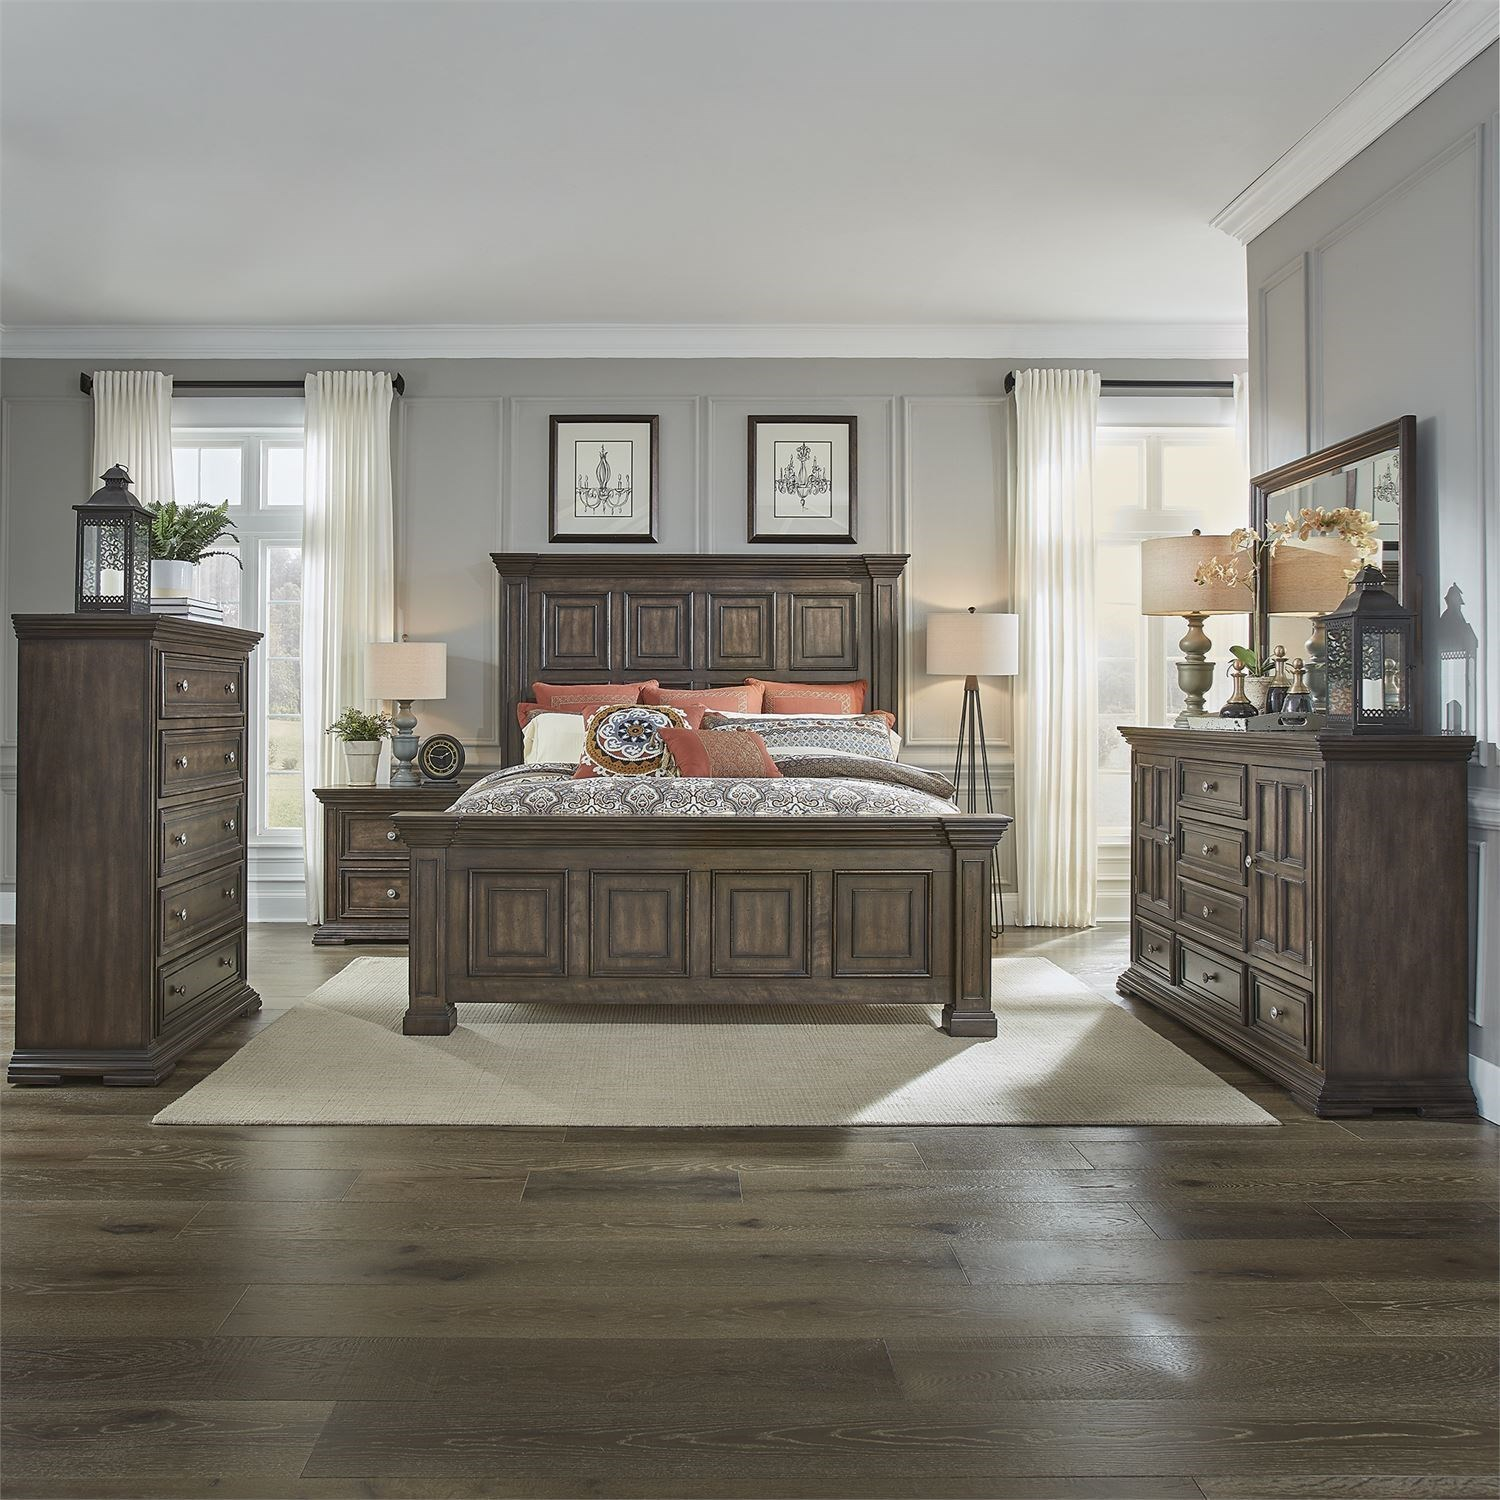 Big Valley King Bedroom Group by Liberty Furniture at Zak's Home